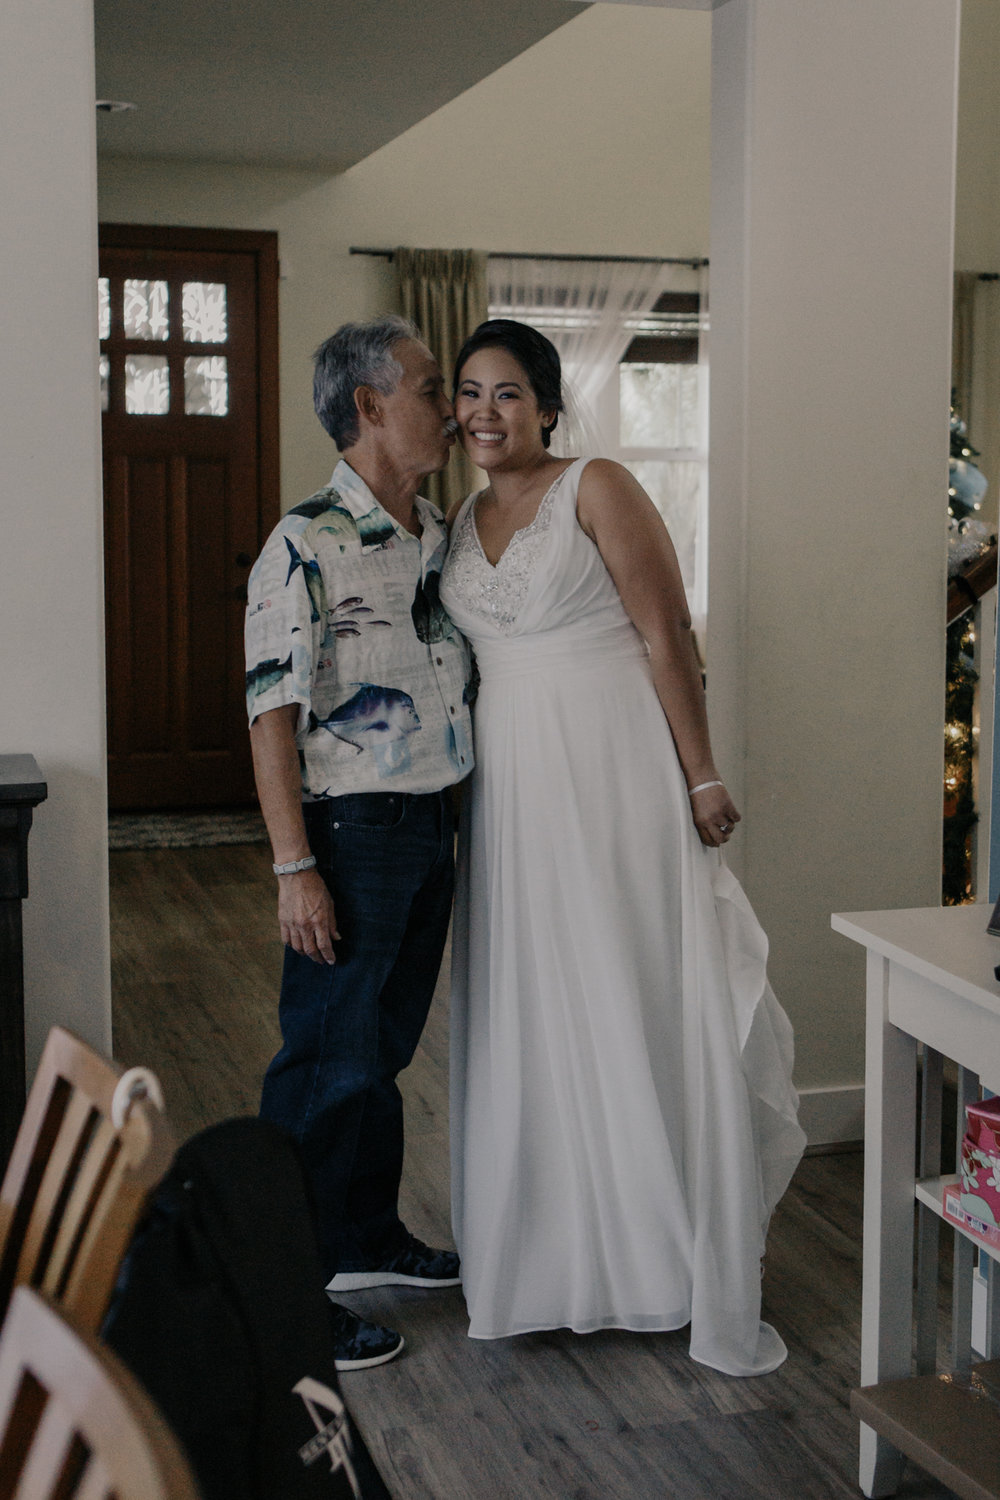 Bride and dad before the wedding